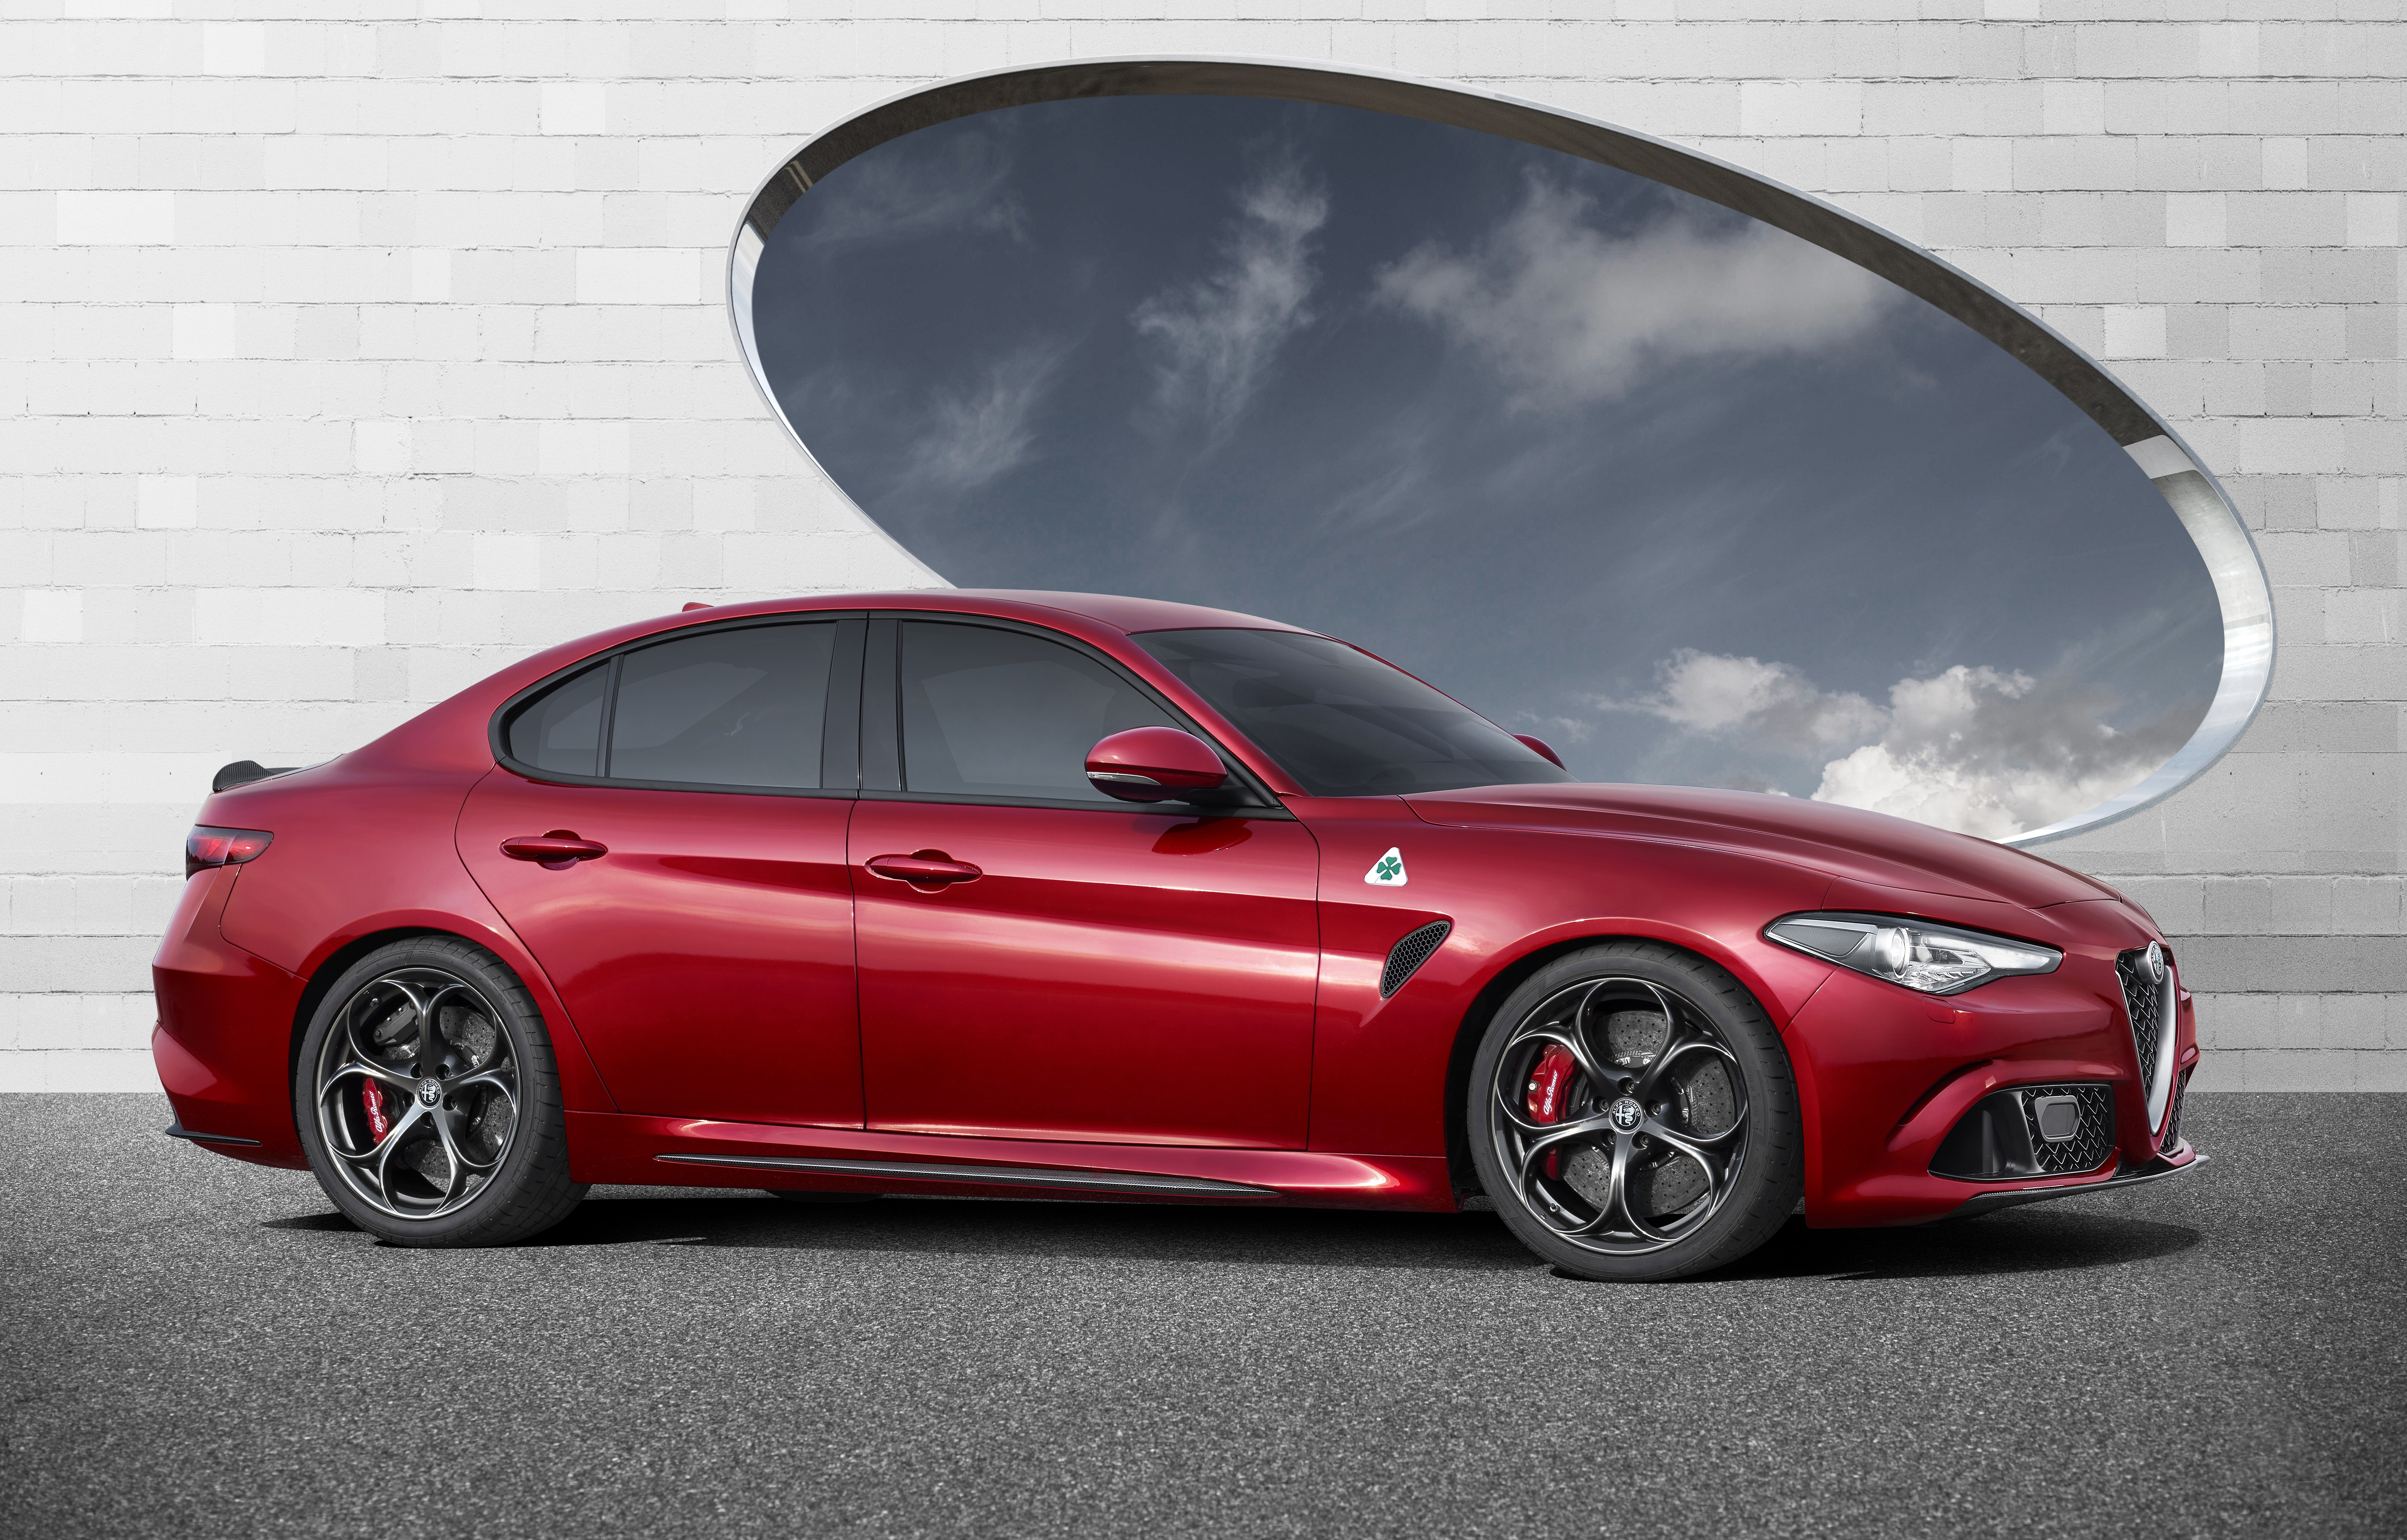 Alfa Romeo Giulia 4k Ultra Hd Wallpaper Background Image